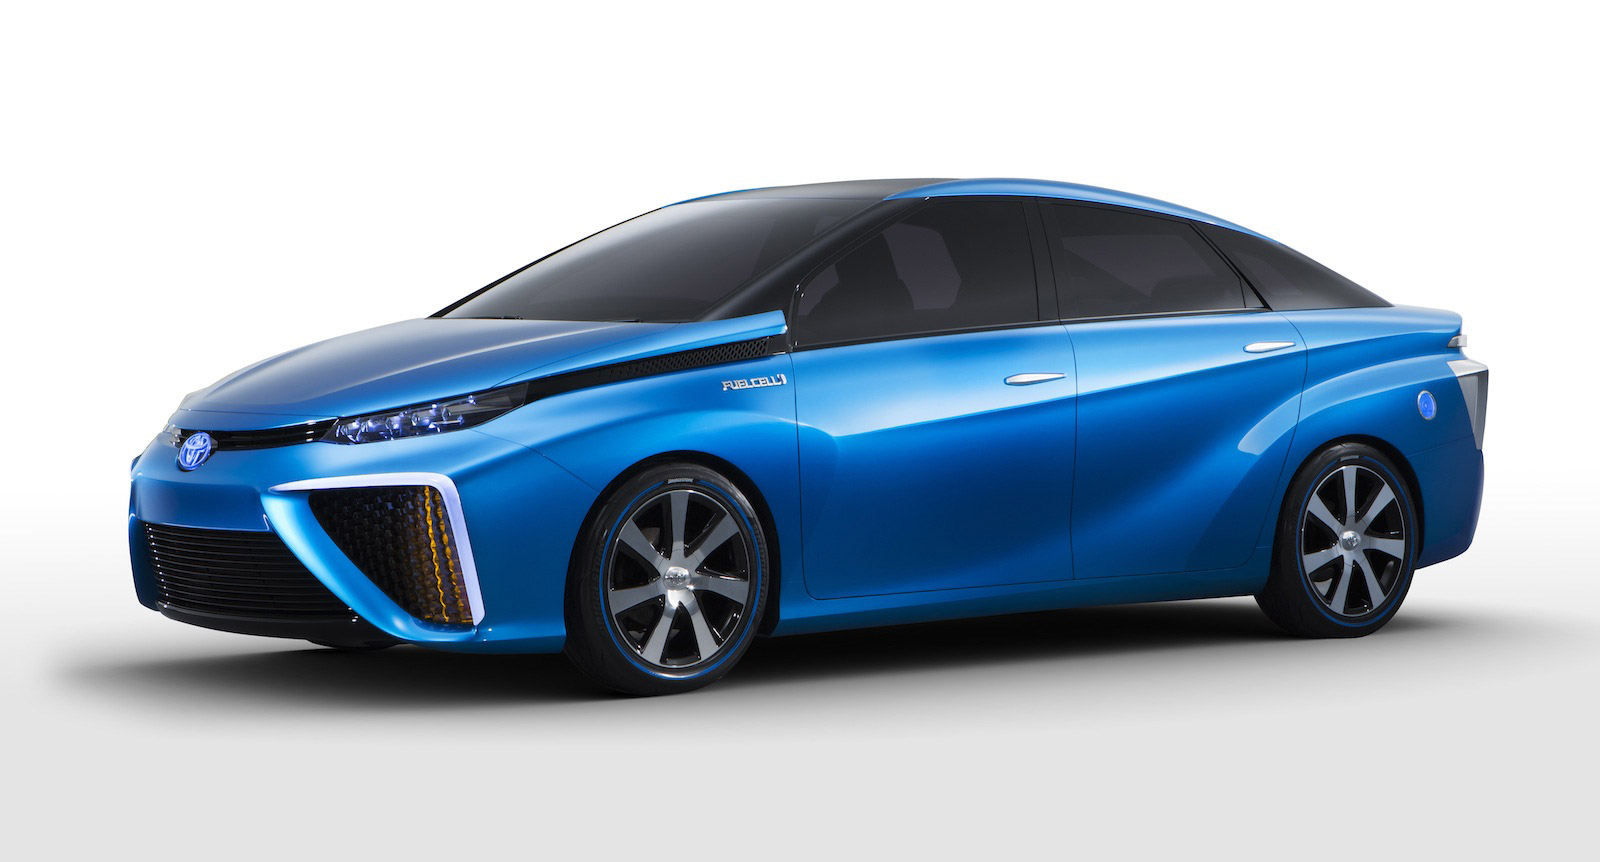 hydrogen fuel cell cars price competitive with electrics